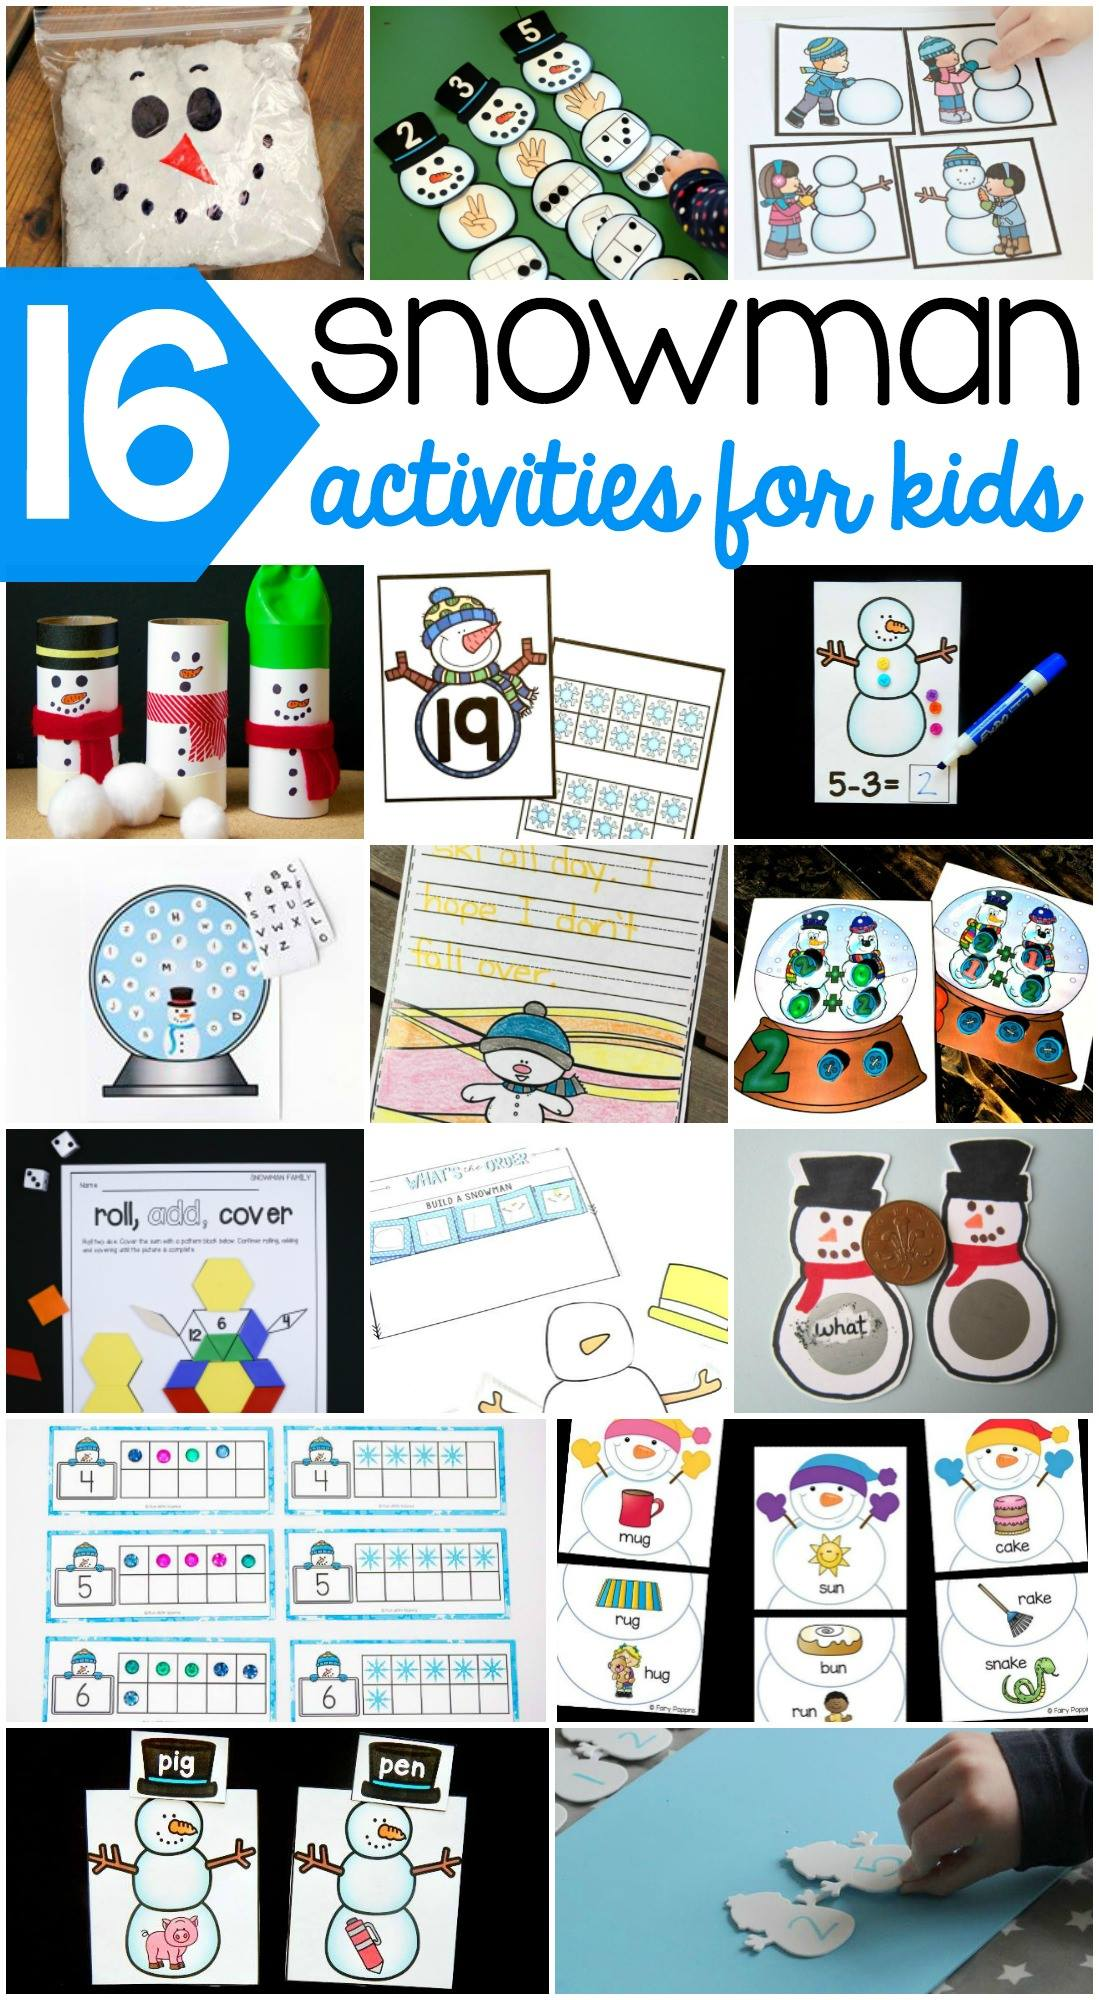 Such an awesome collection of snowman activities for kids!